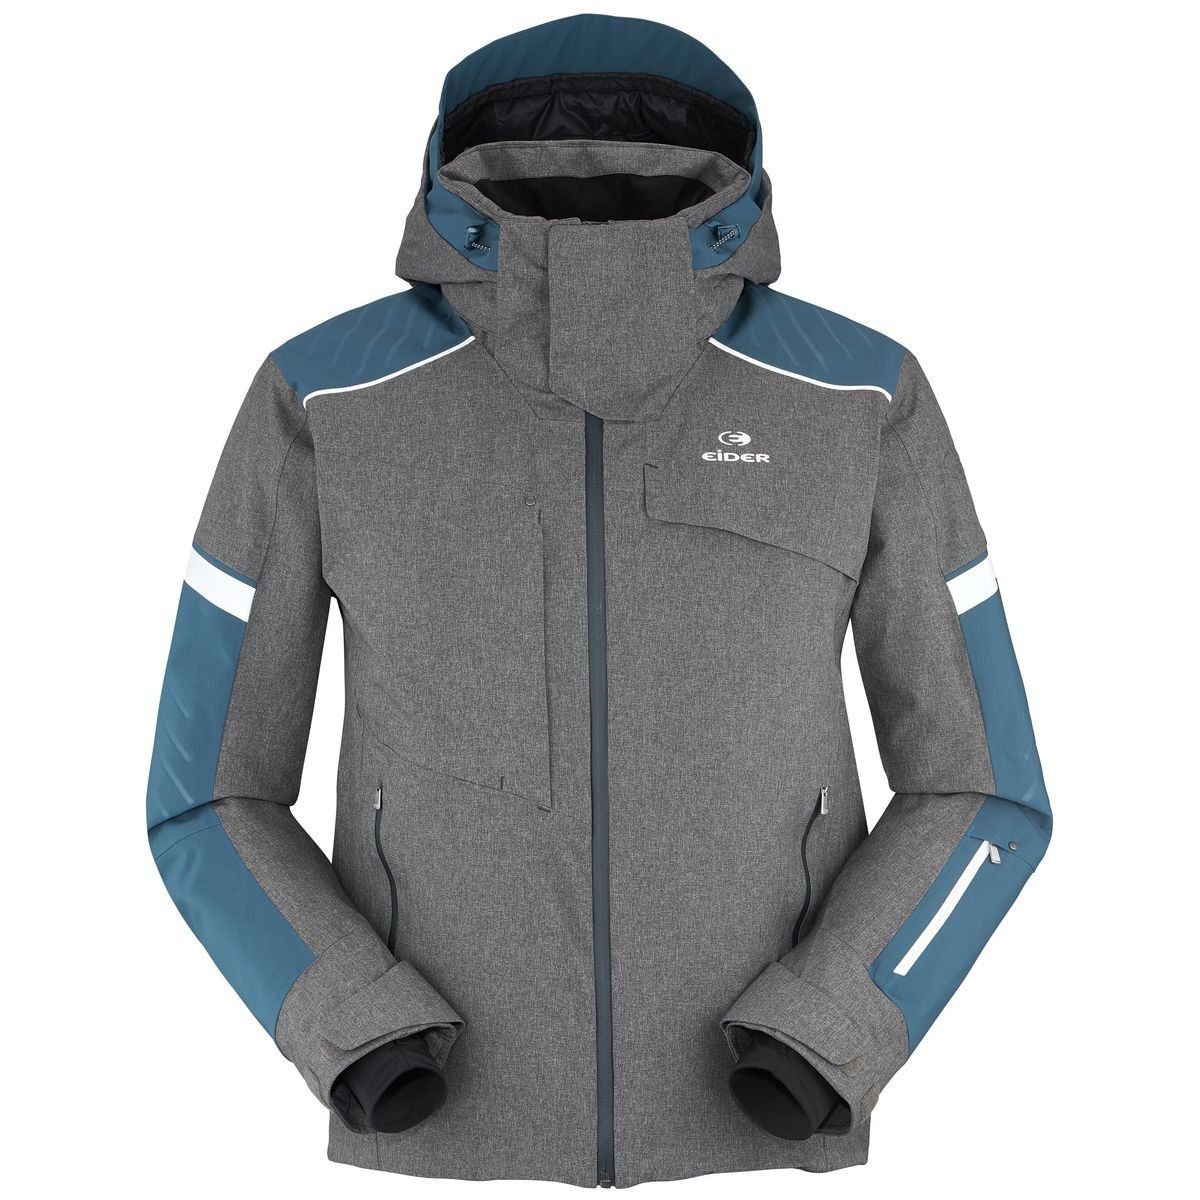 4131dd5a5e The 9 Best Ski Clothing Brands of 2019